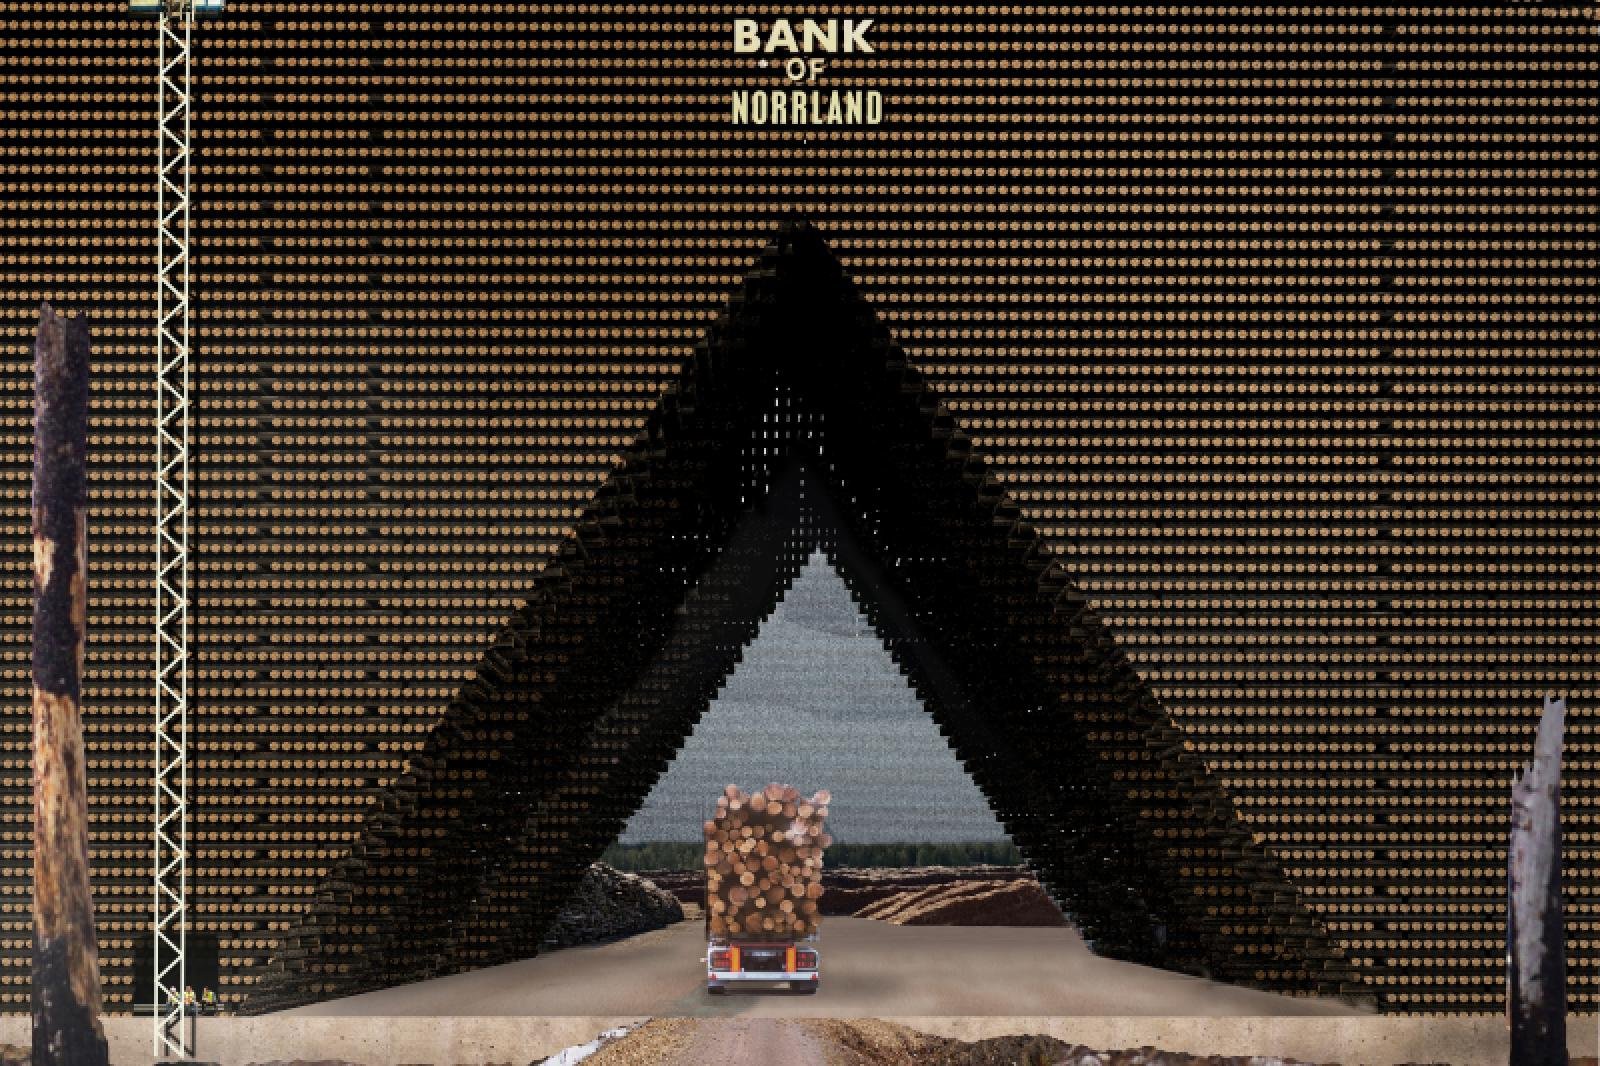 Bank of Norrland